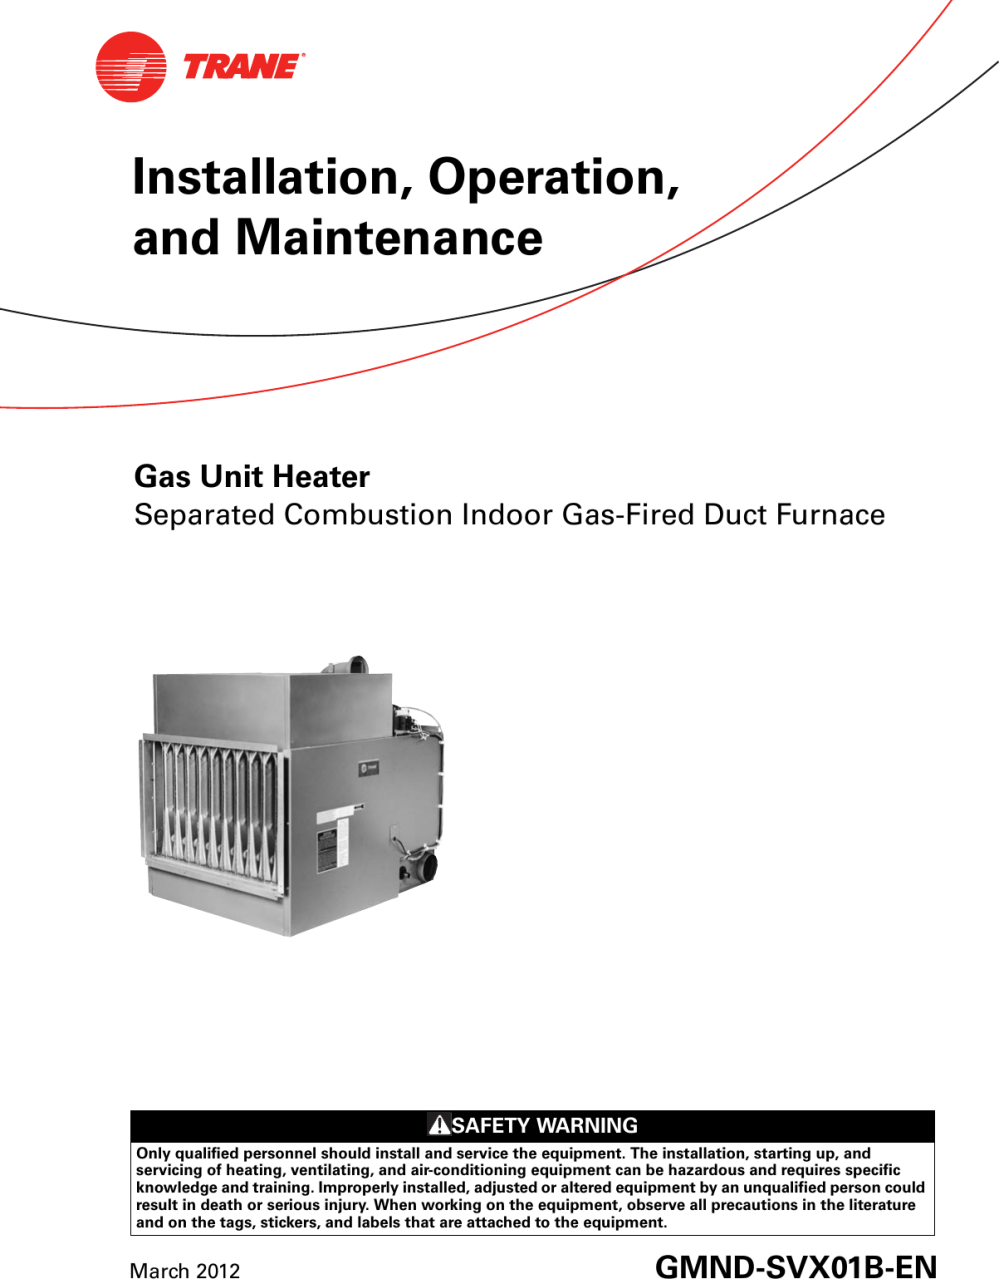 medium resolution of trane gas unit heaters installation and maintenance manual gmnd svx01b en 03 16 2012 installation operation heater separated combustion indoor fired duc